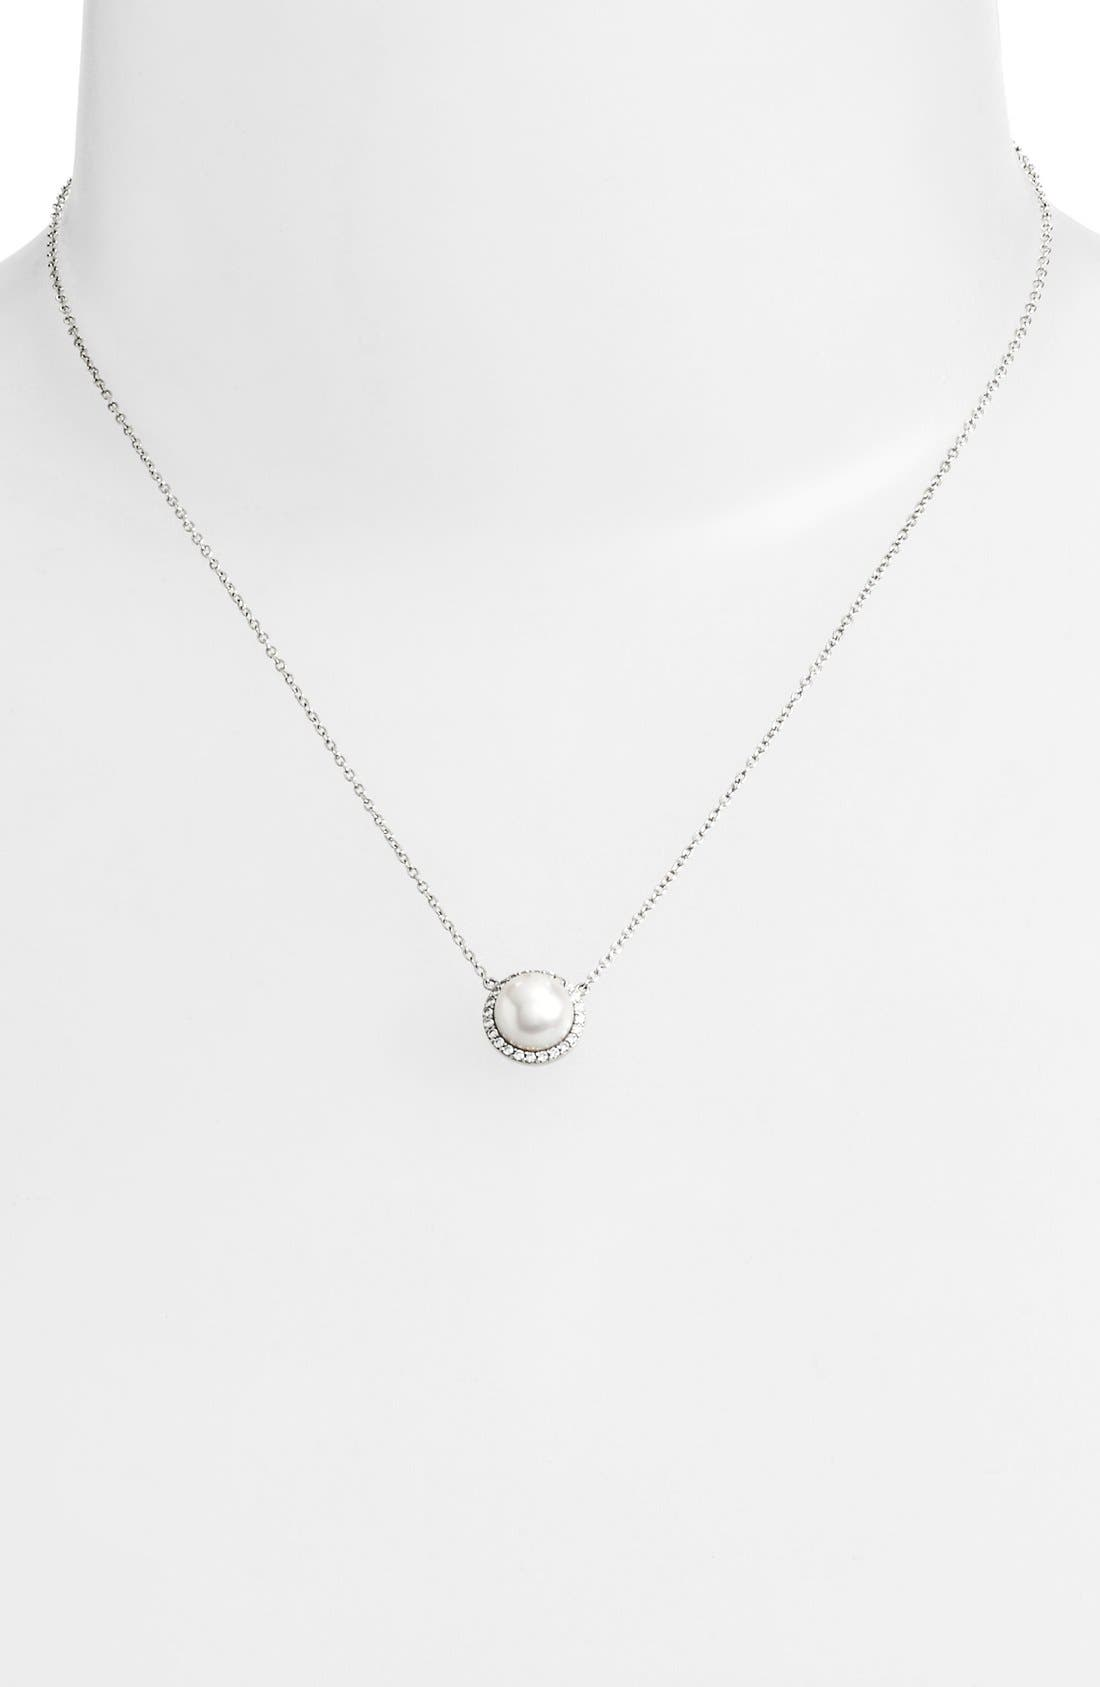 'Lassaire' Pearl Pendant Necklace,                             Alternate thumbnail 2, color,                             SILVER/ CLEAR